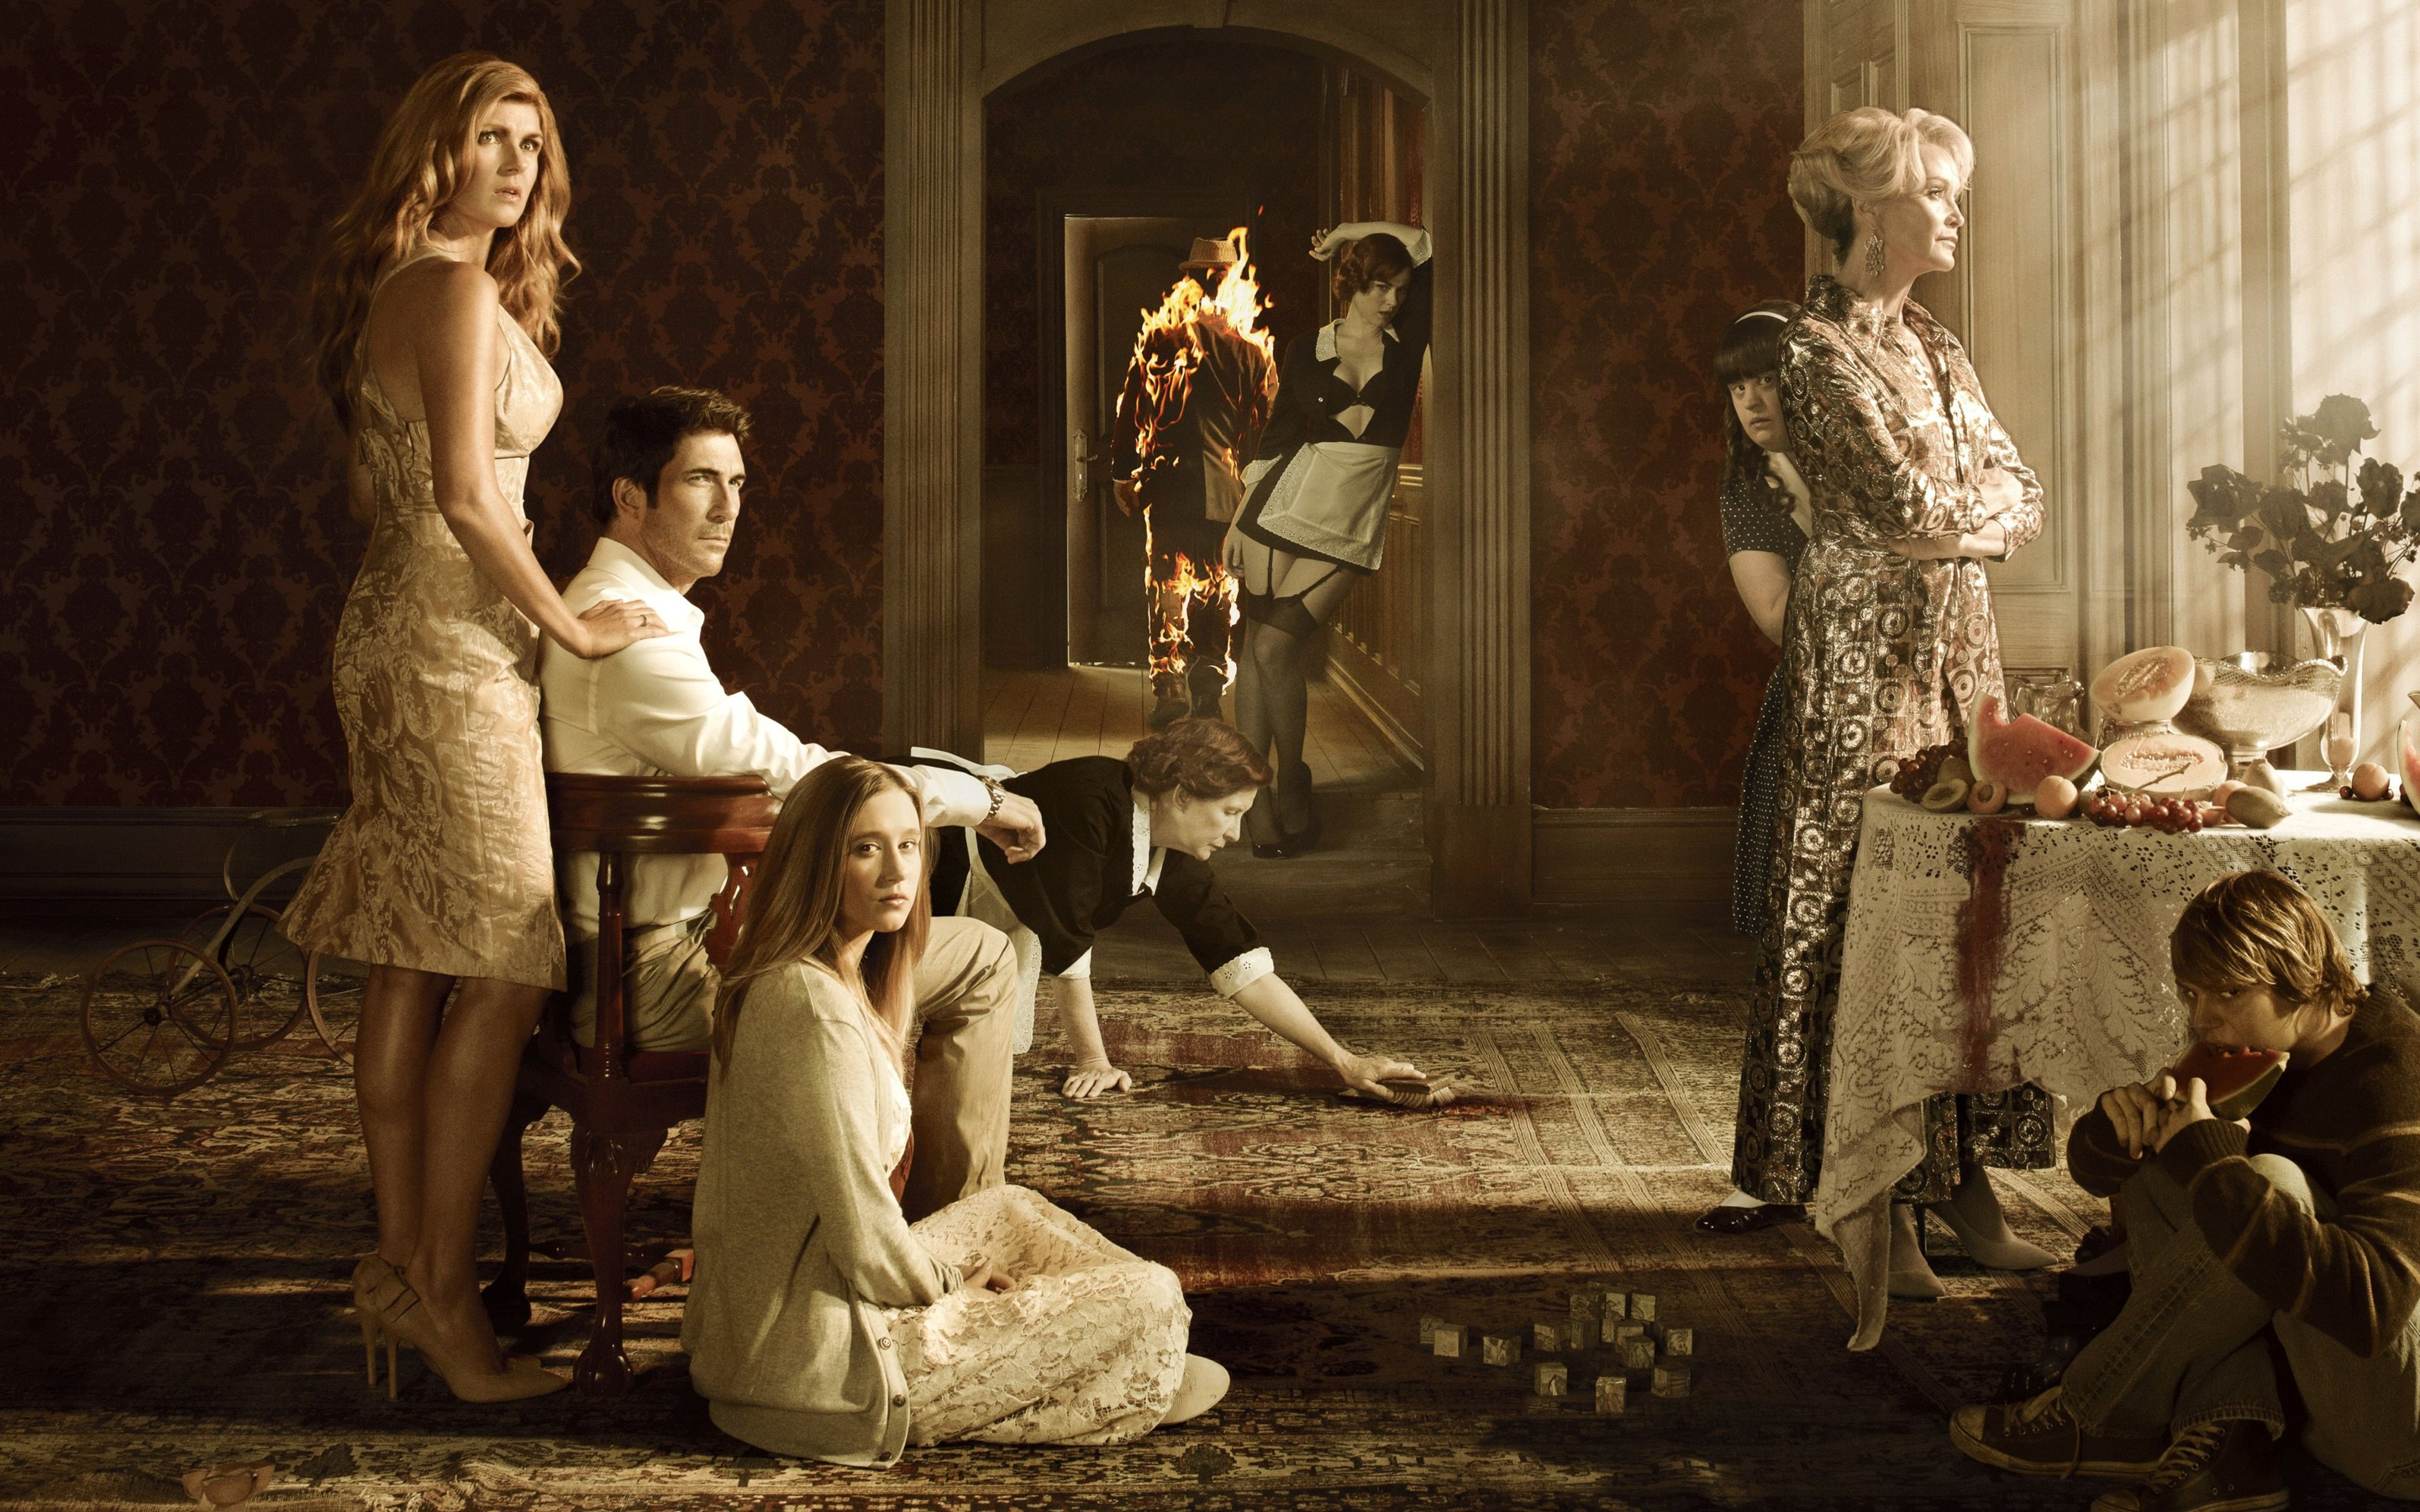 American horror story hd tv shows 4k wallpapers images backgrounds photos and pictures - American horror story wallpaper ...